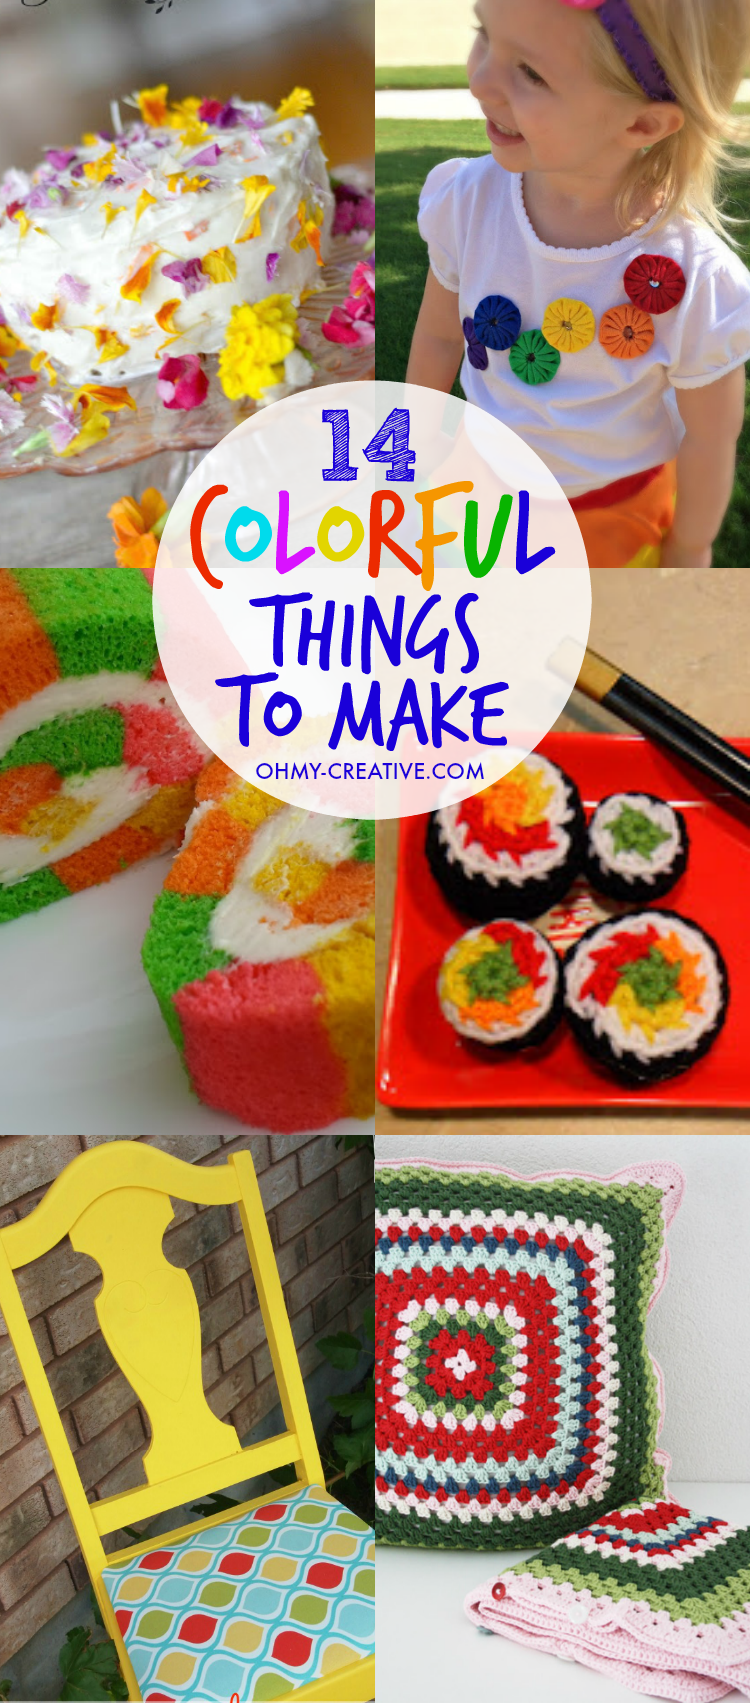 I love a pop of color! A bright hue stands out anywhere - from home decor, pretty dessert or a kids craft! That's why I love these 14 Colorful DIY Craft Trends and colorful things to make!     OHMY-CREATIVE.COM